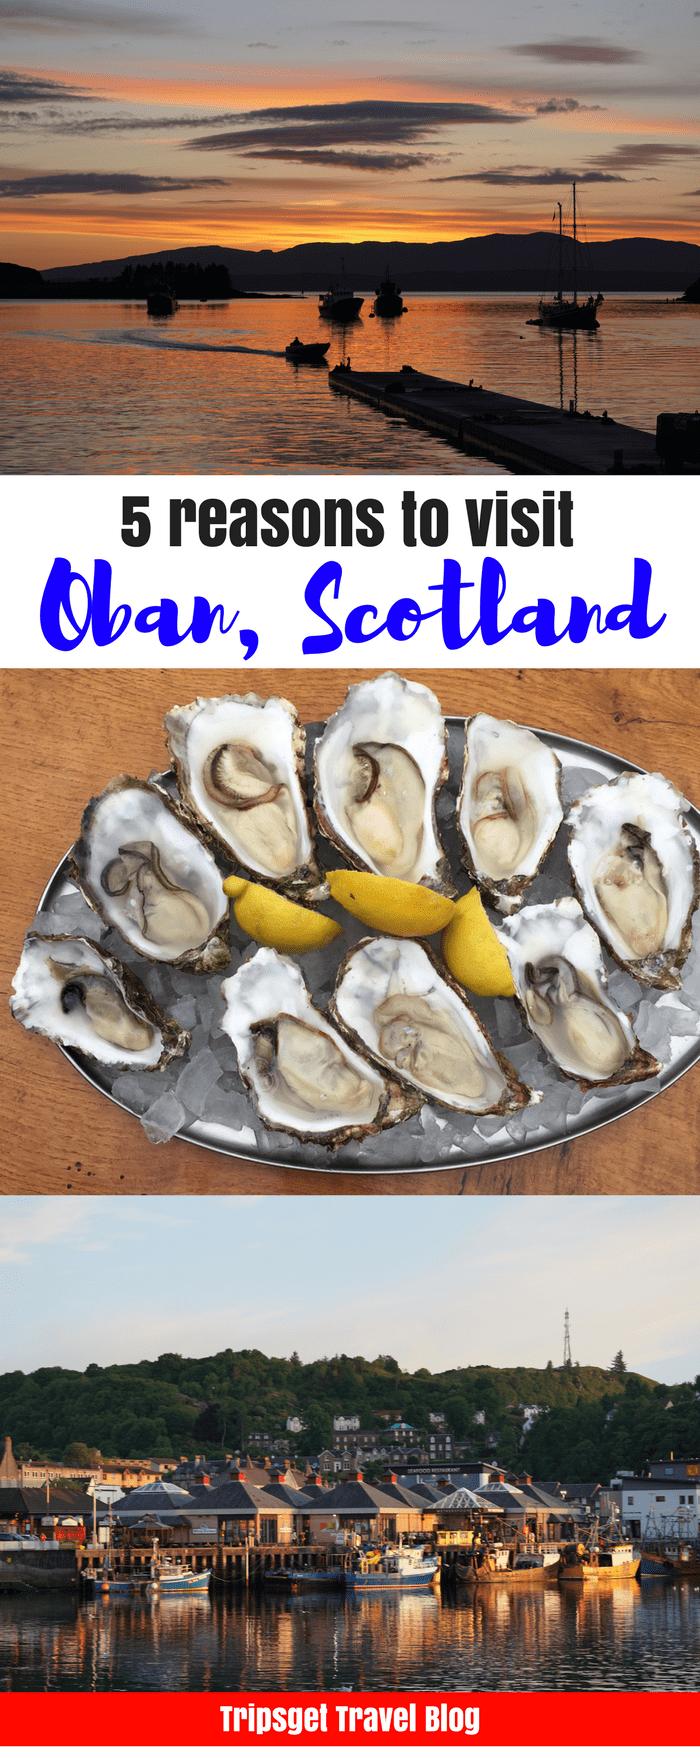 5 reasons to visit Oban, Scotland. Edinburgh to Oban. Best Seafood in Scotland, best oysters in the UK, nightlife in the UK, cruise to the isle of Mull, see puffins, Oban distillery